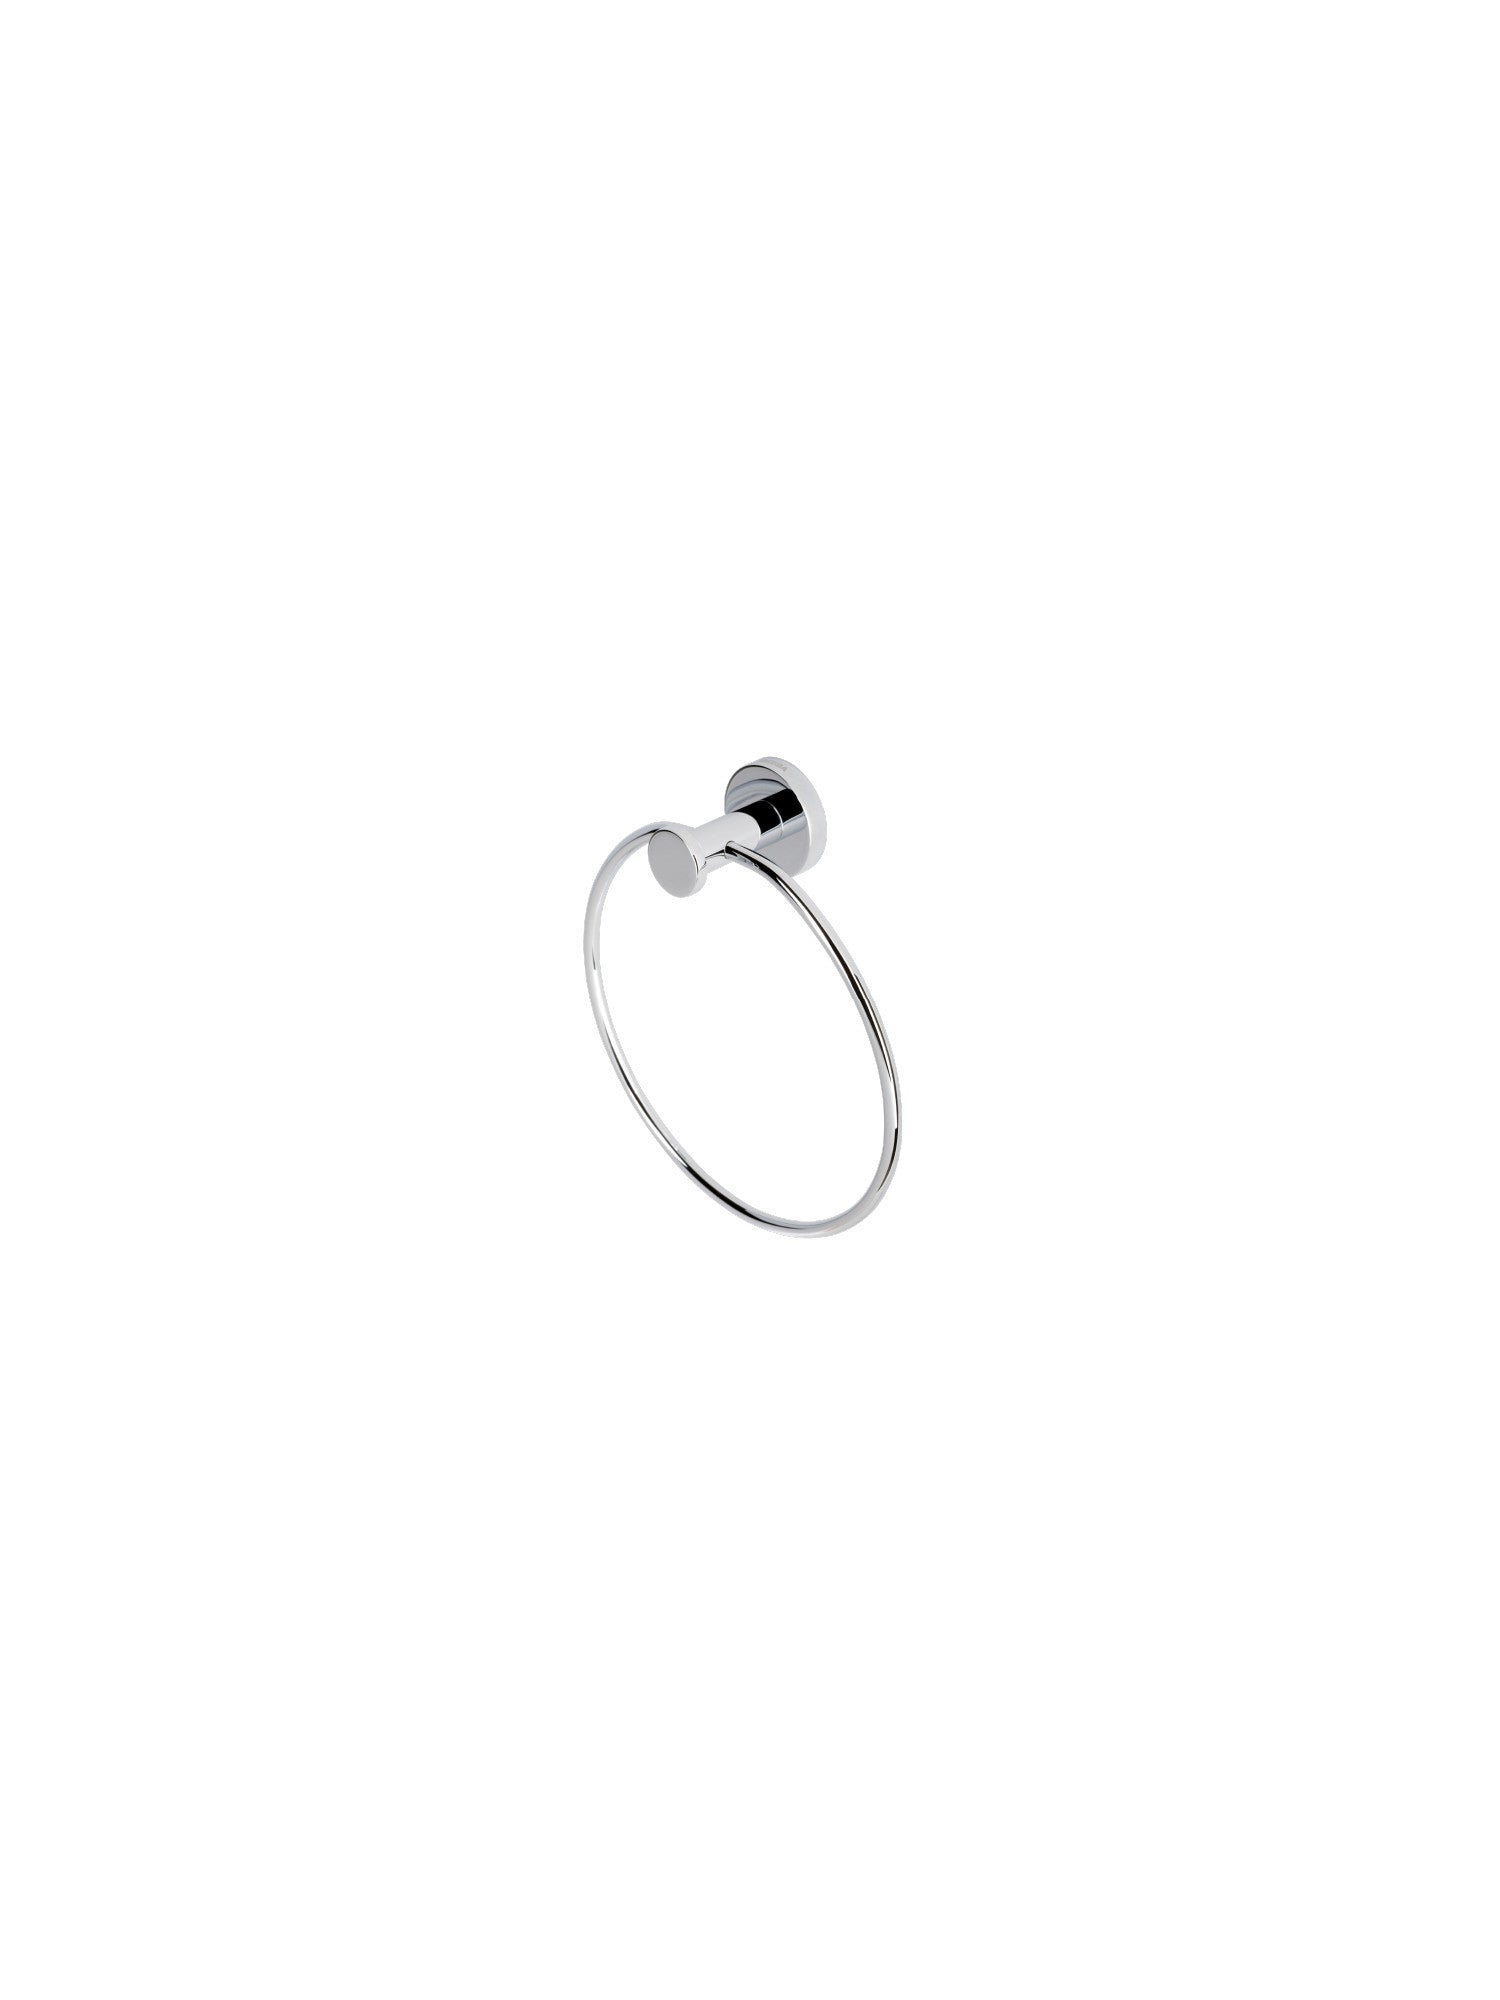 Nemox Towel Ring #6504-02